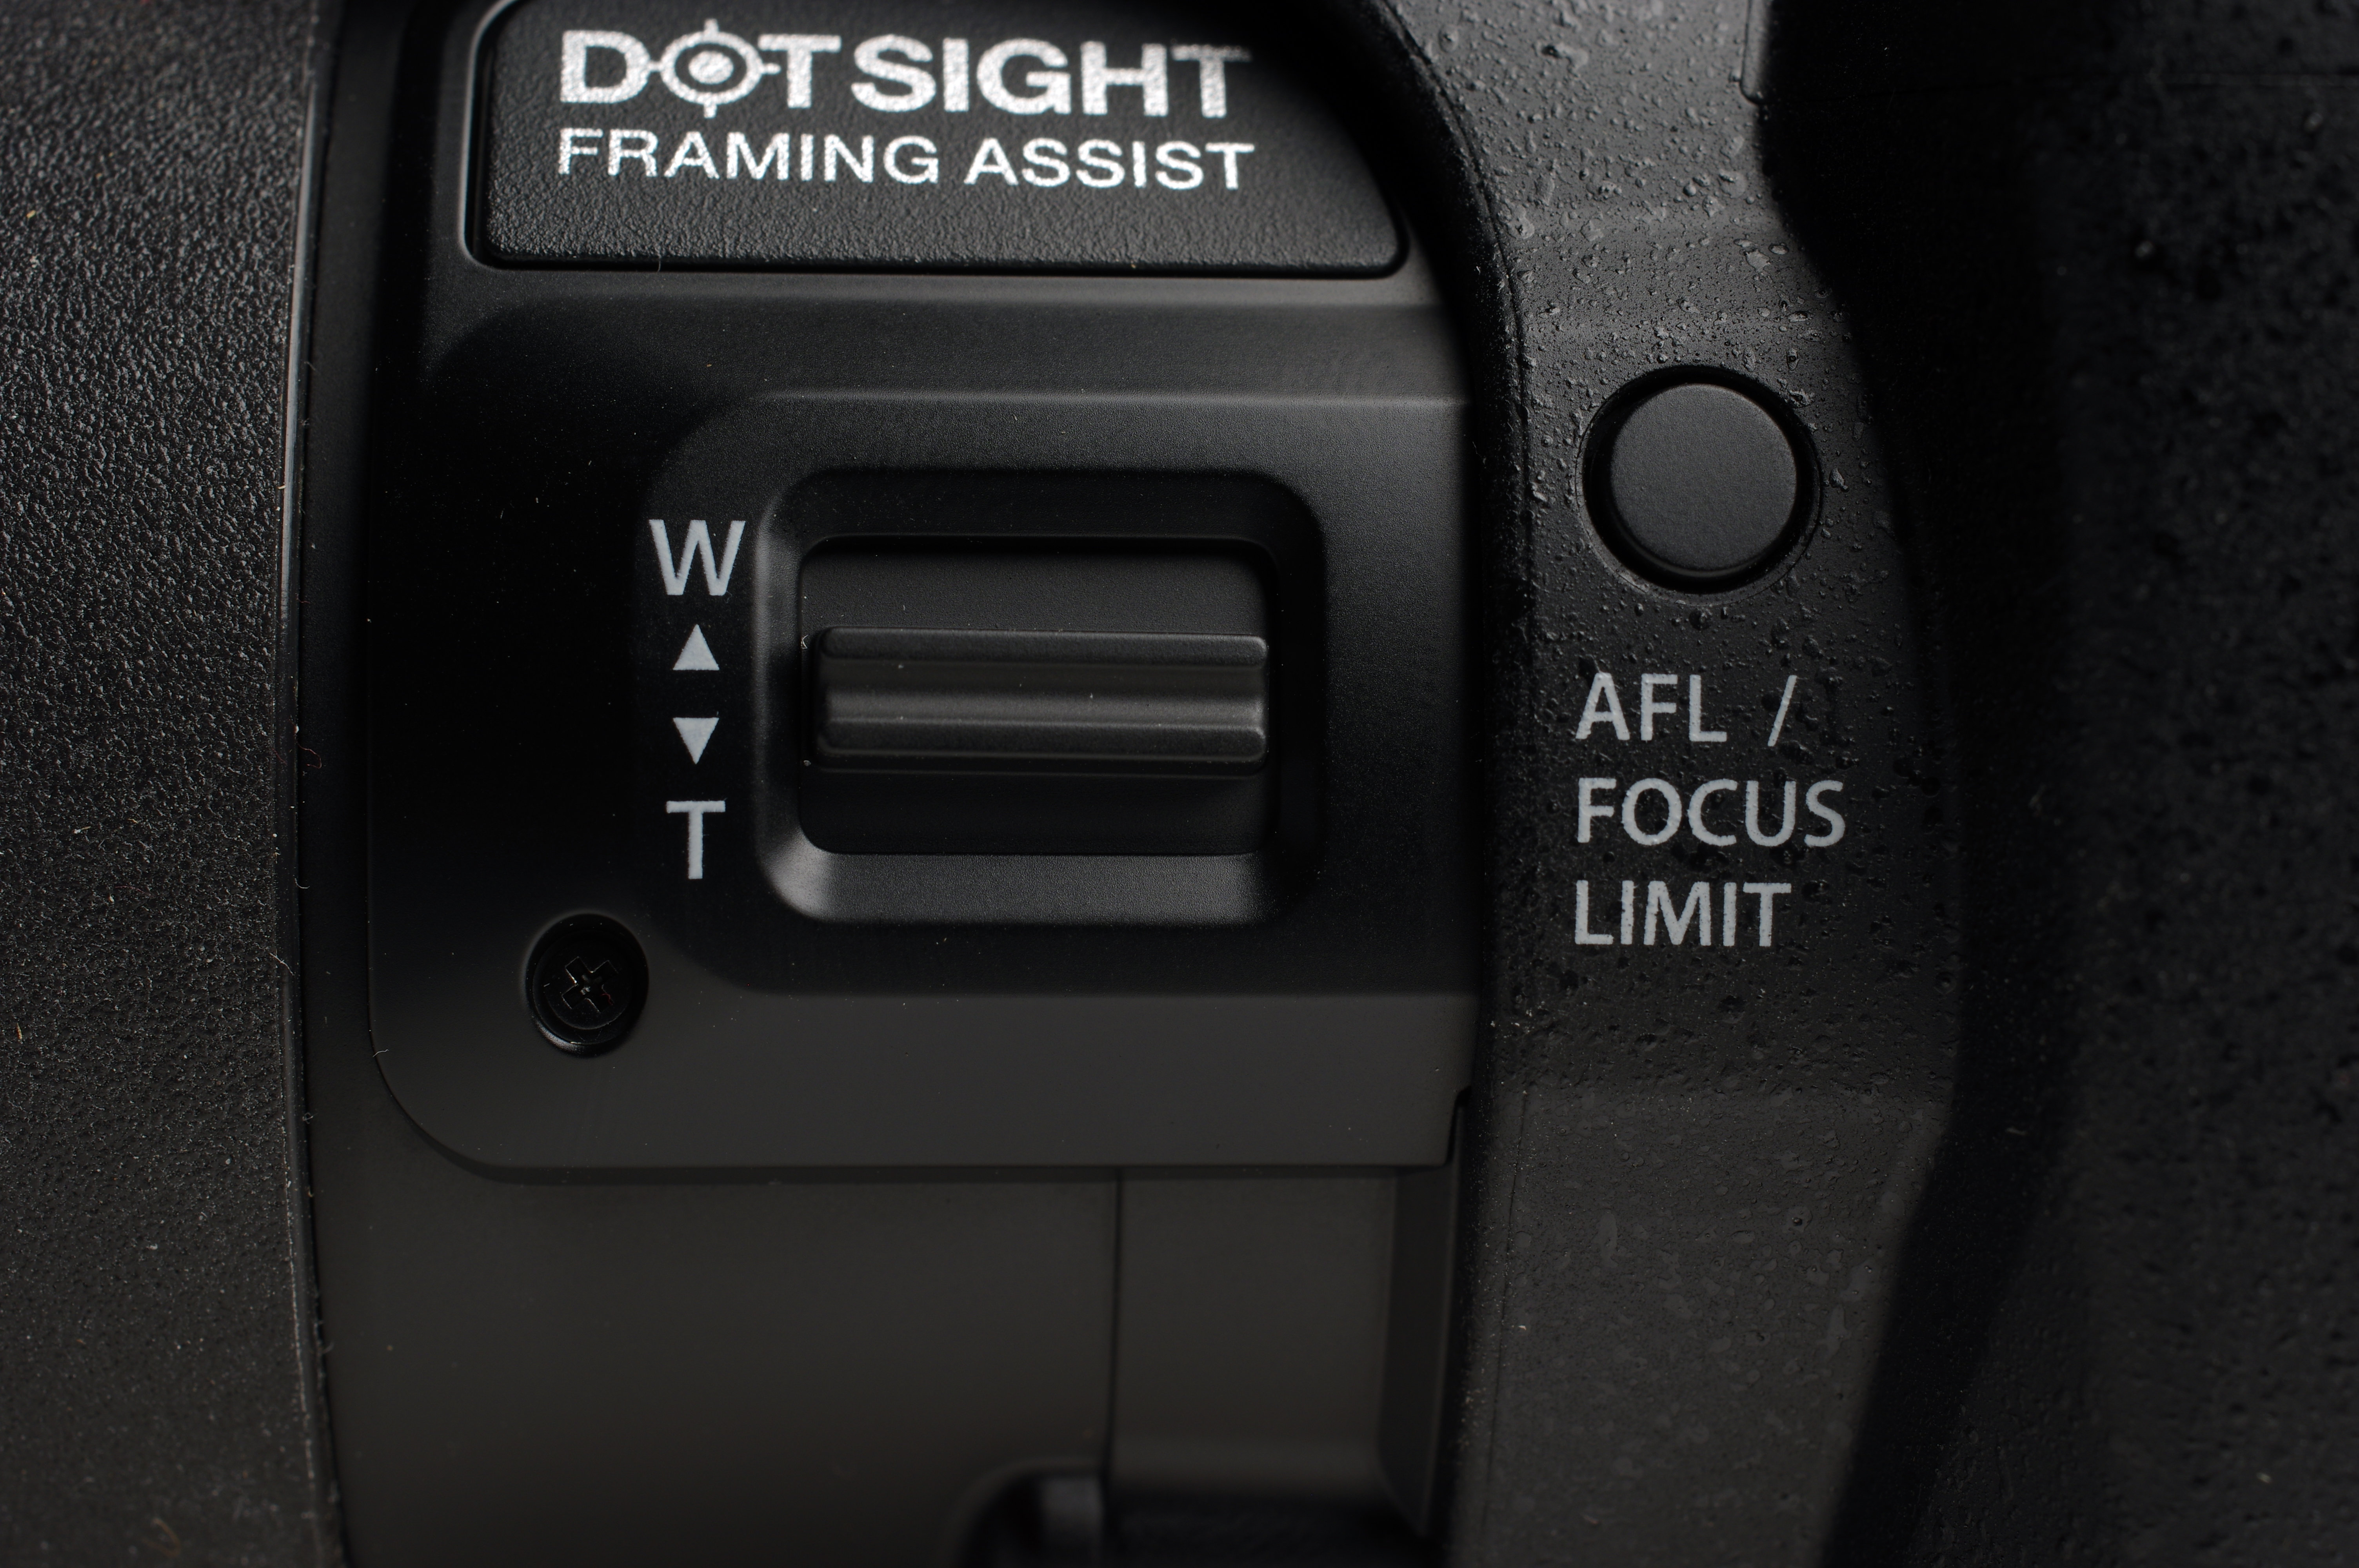 The zoom can be throttled on top by the shutter release or this side control.